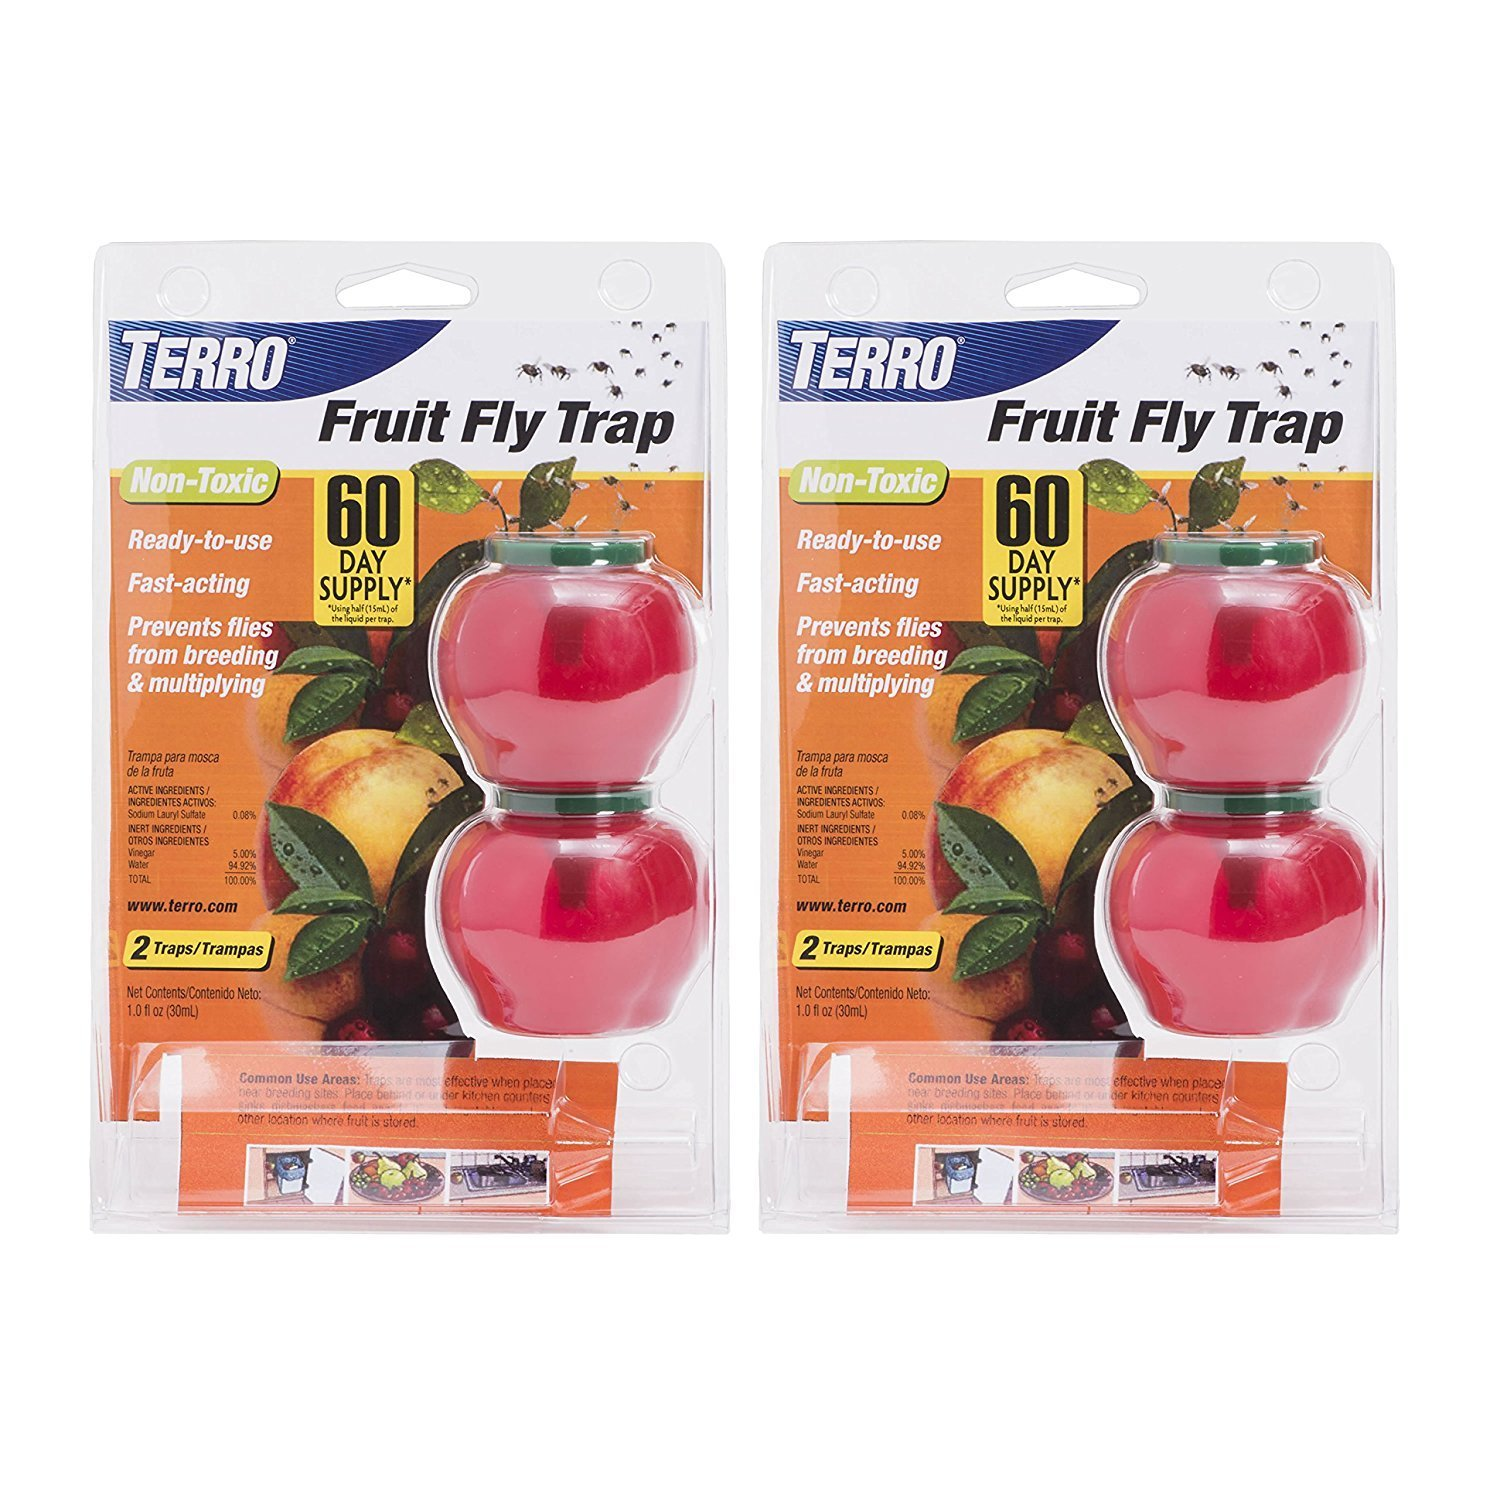 TERRO Fruit Fly Trap – 2 Pack T2502 4 Traps